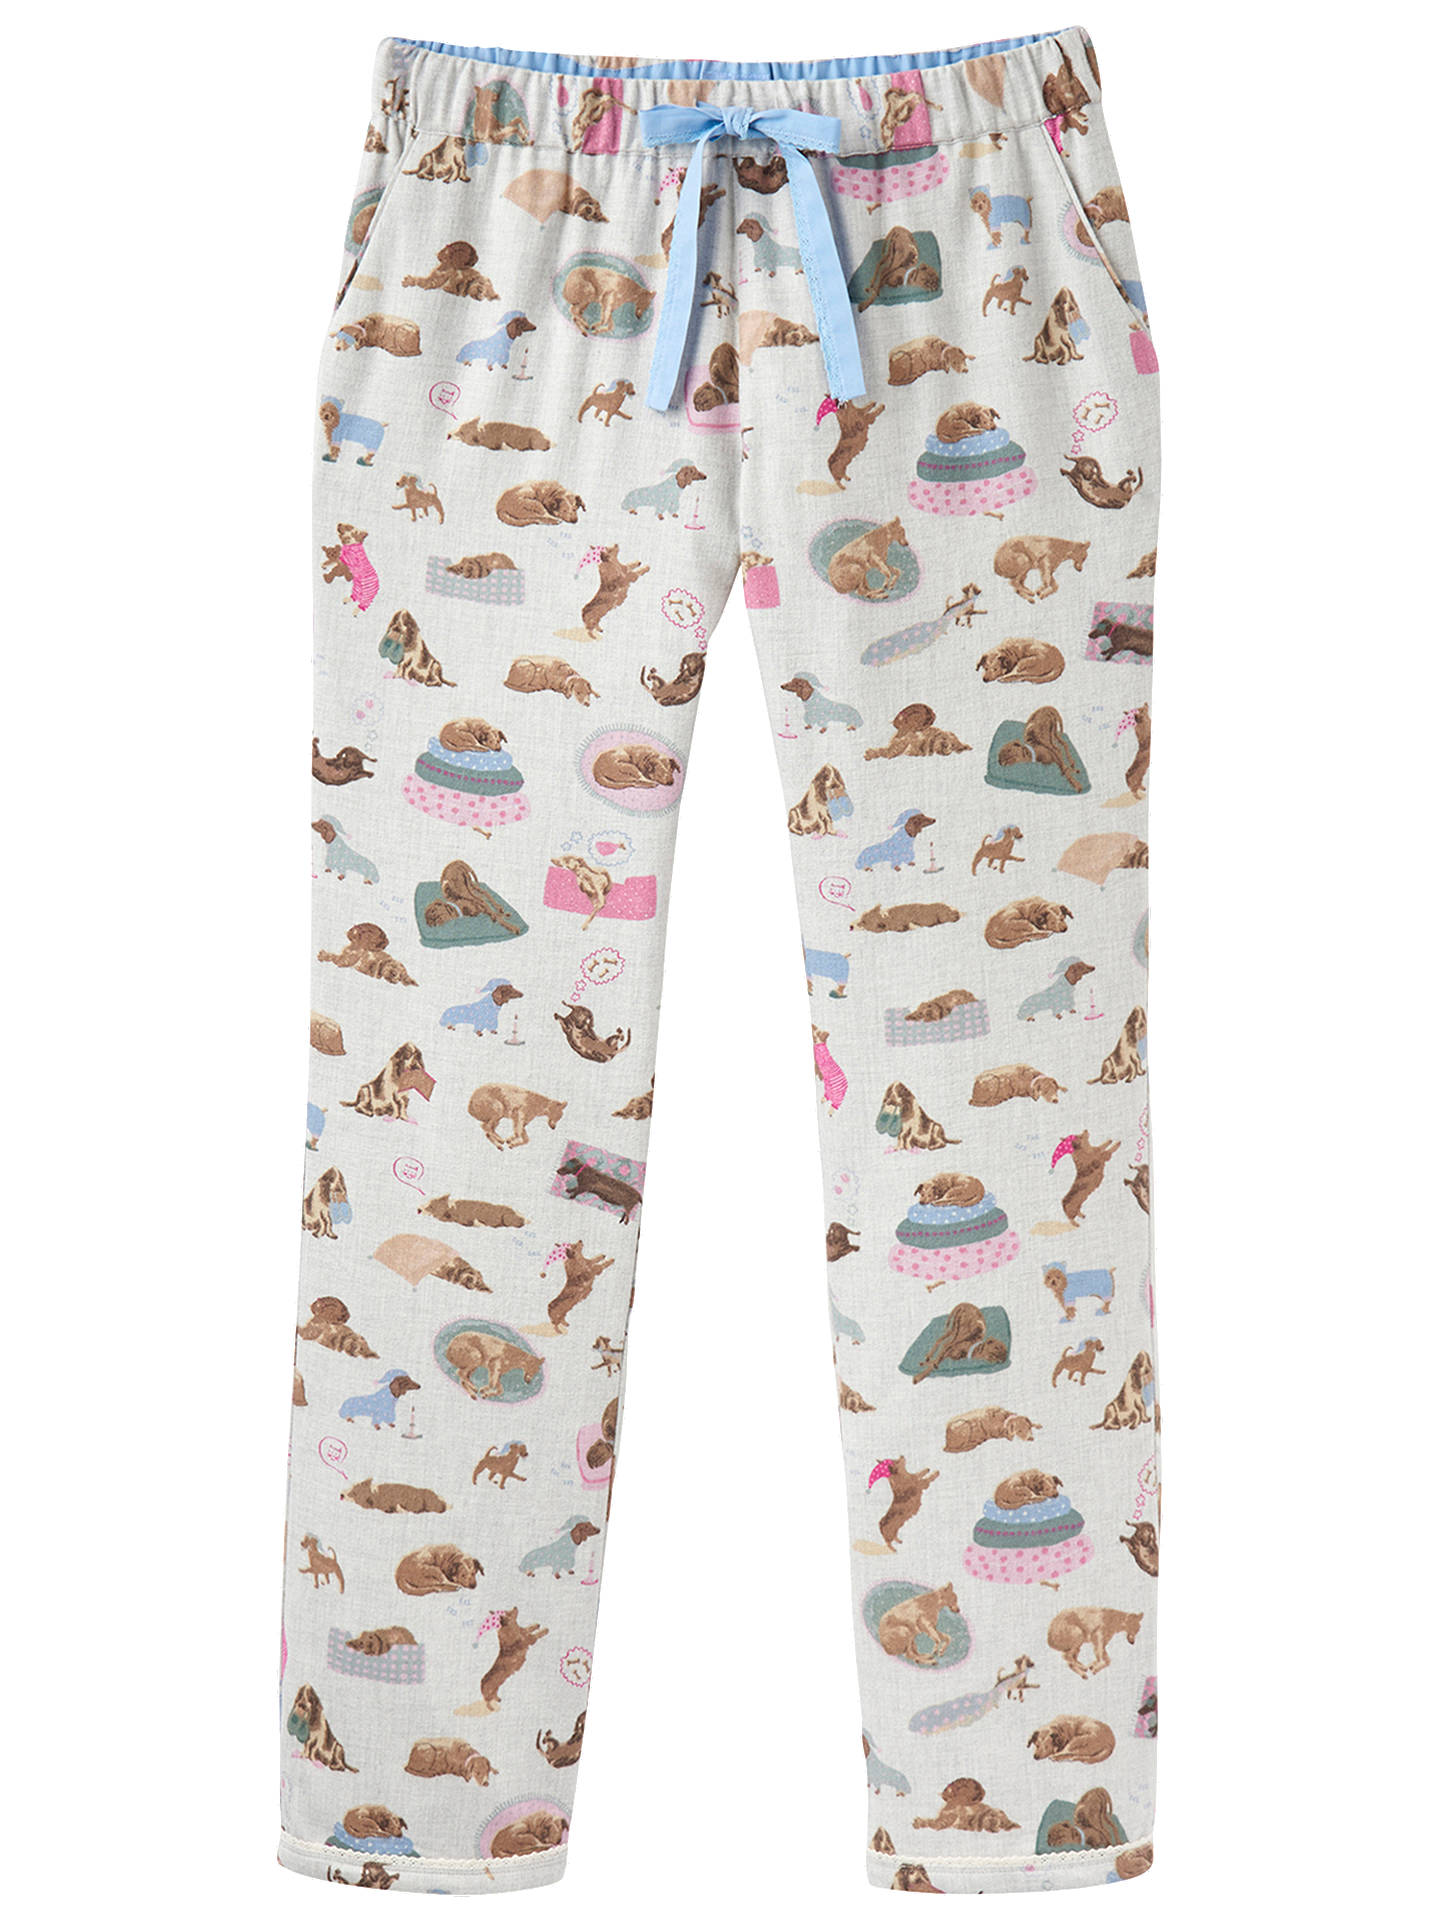 BuyJoules Snooze Dog Print Cotton Pyjama Bottoms e109d3757